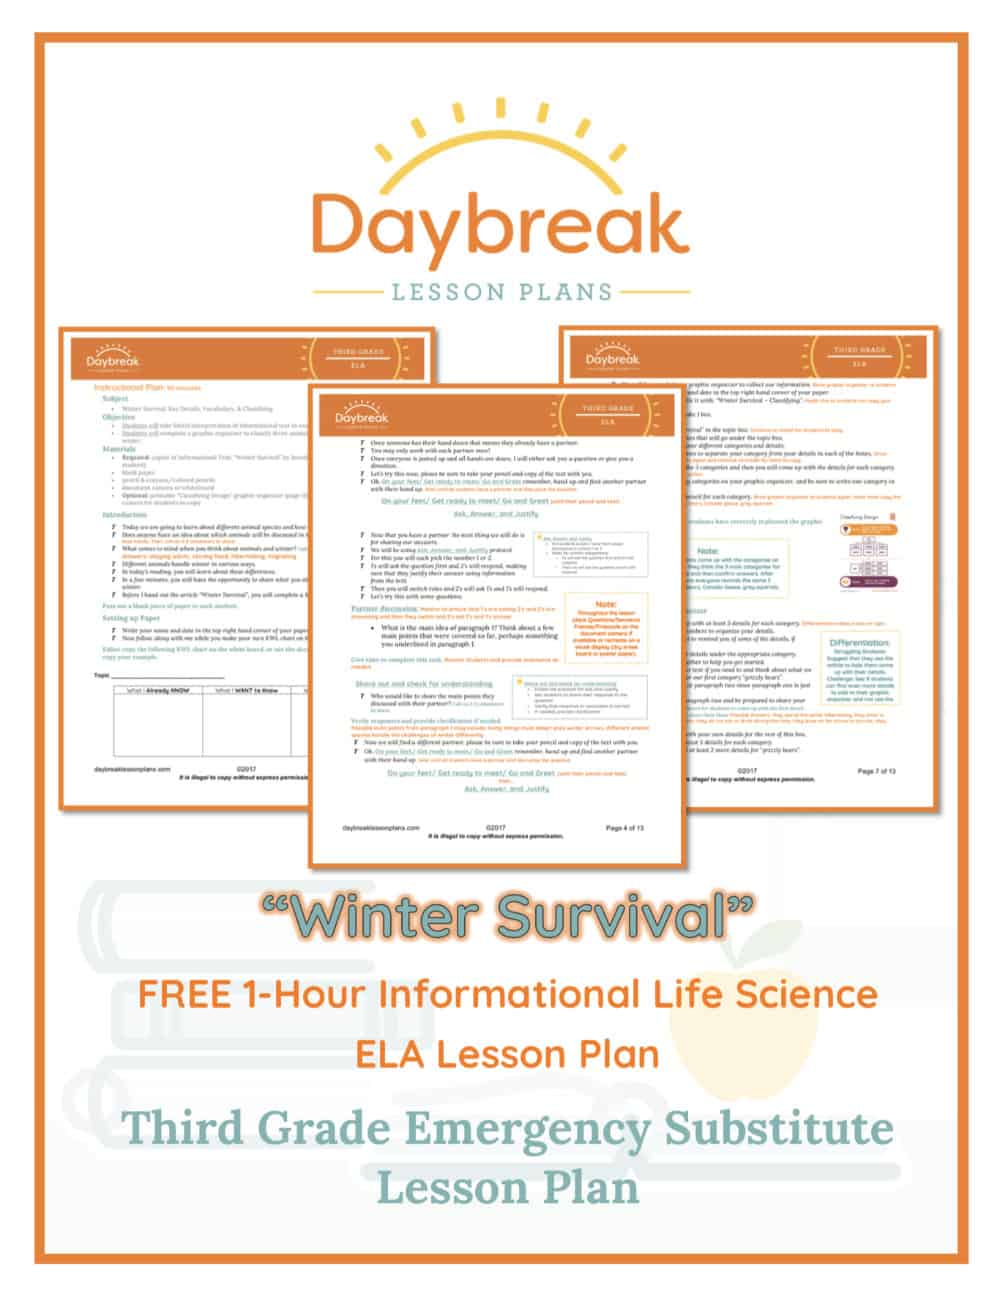 Illustration of the free 3rd Grade ELA lesson plan covers